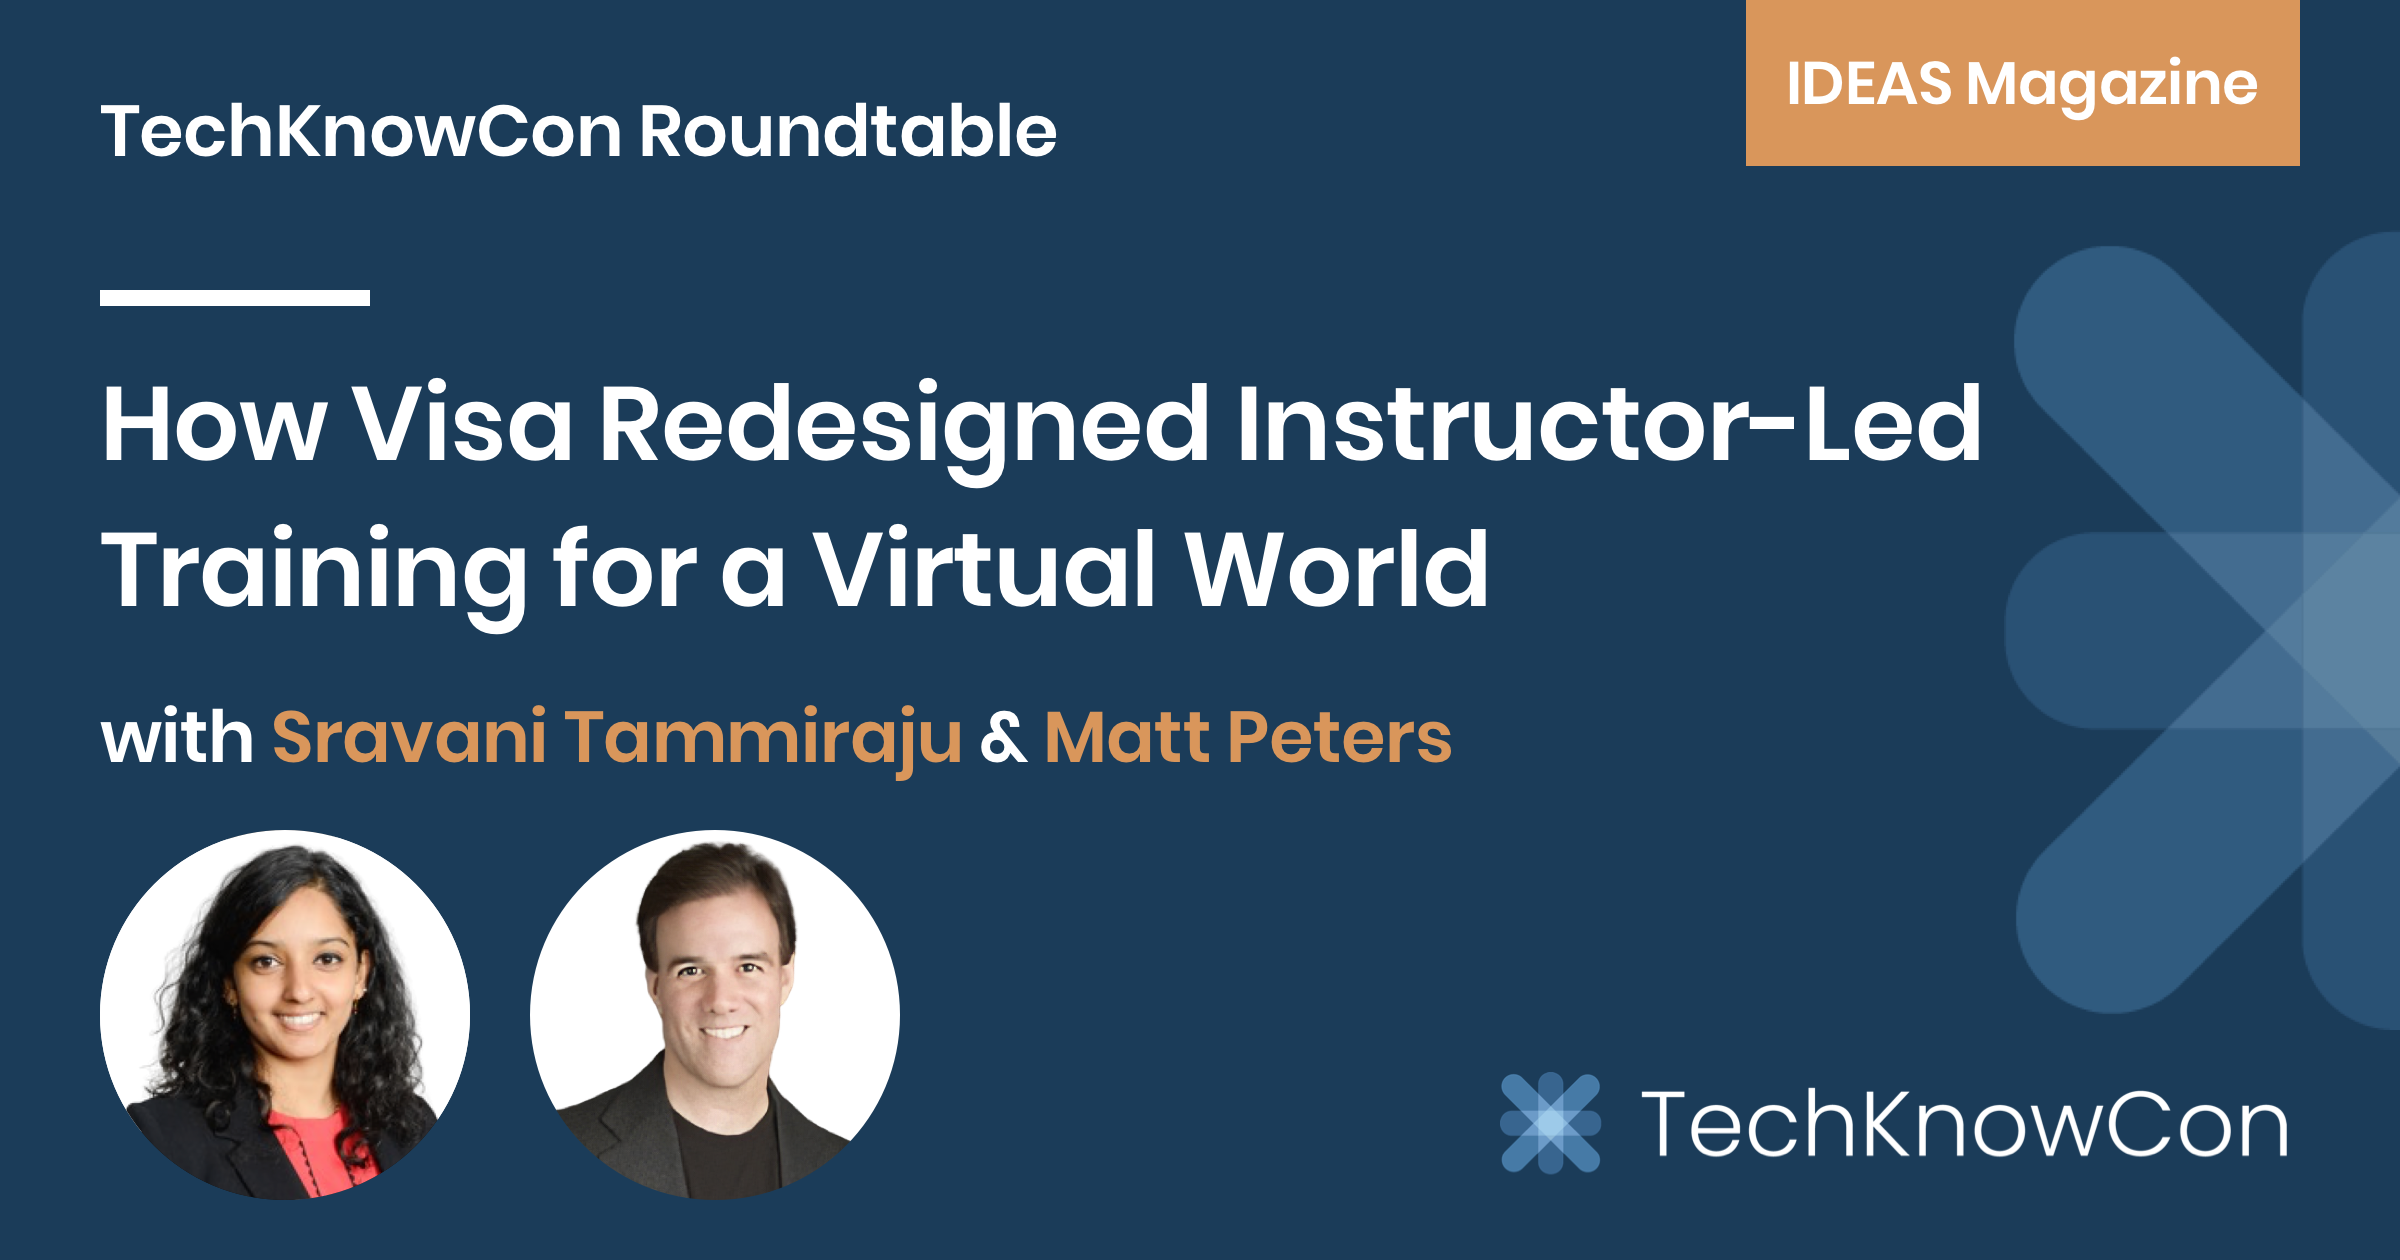 How Visa Redesigned Instructor-Led Training for a Virtual World